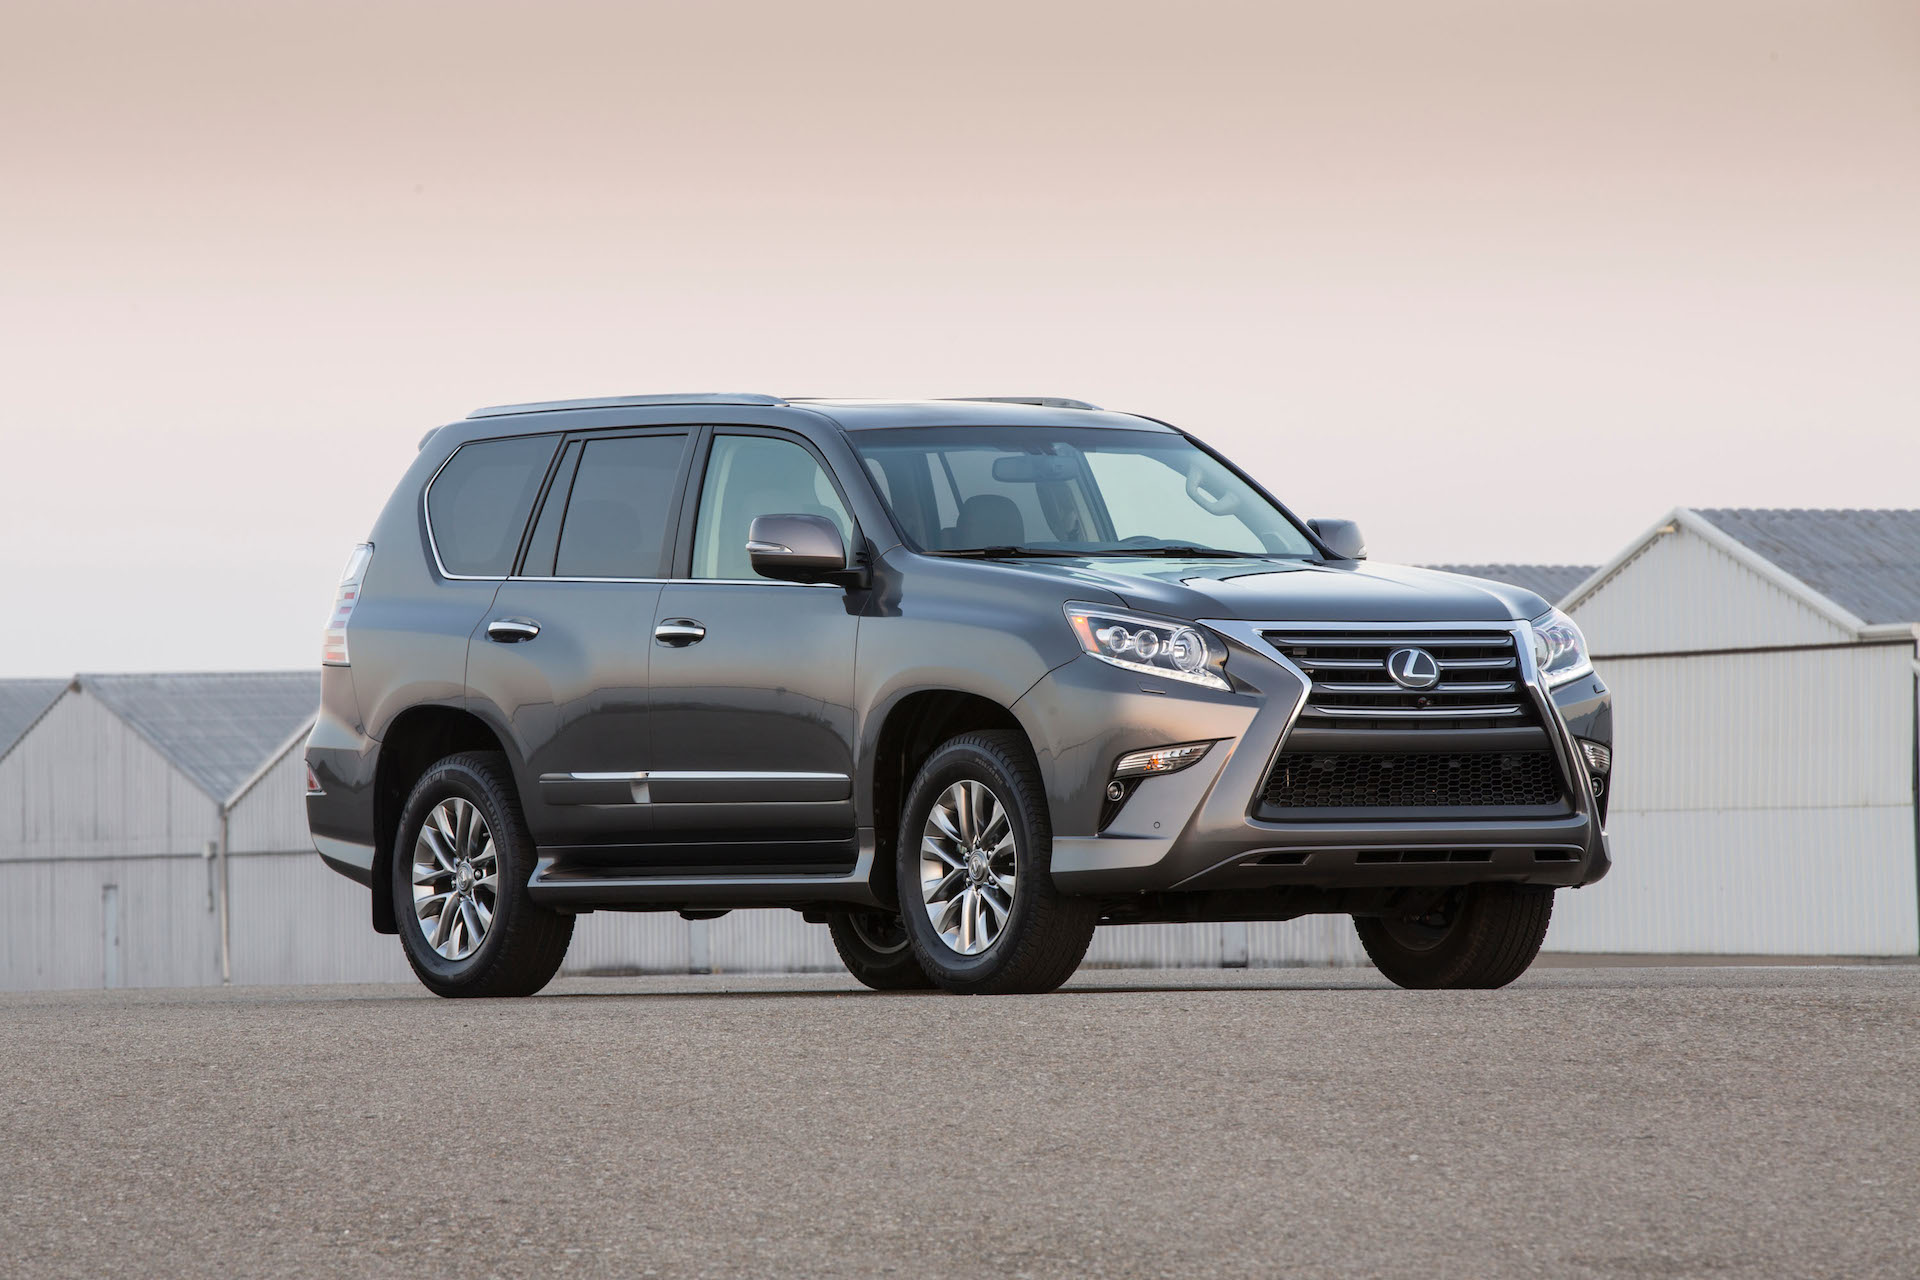 Lexus 2015 Suv >> 2015 Lexus Gx Review Ratings Specs Prices And Photos